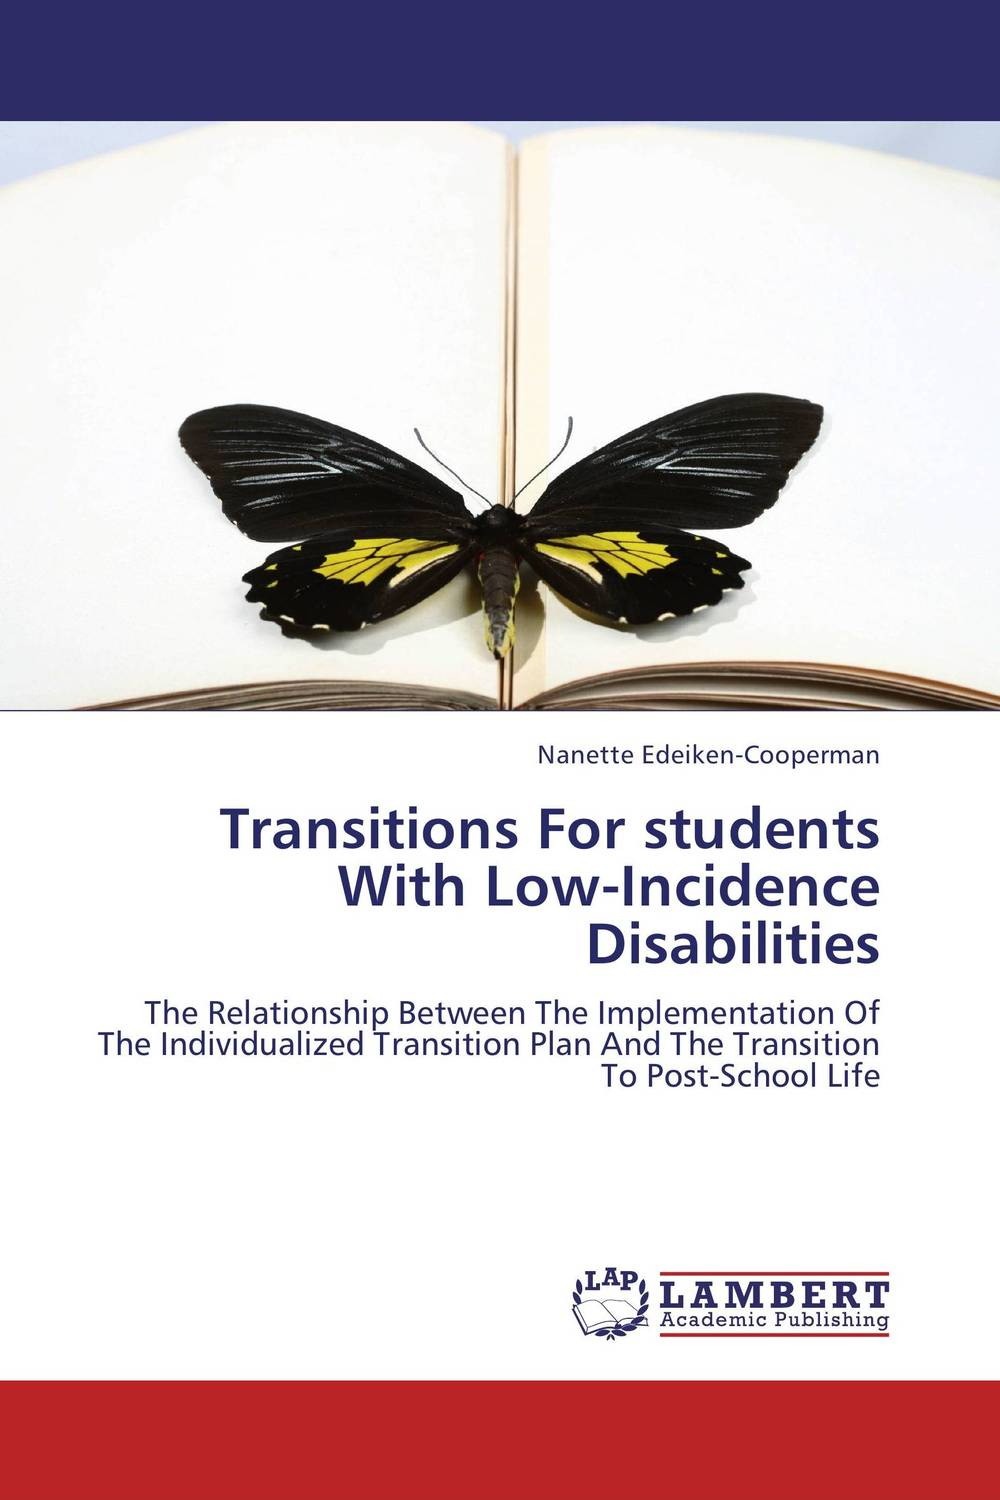 Transitions For students With Low-Incidence Disabilities alan roxburgh missional map making skills for leading in times of transition